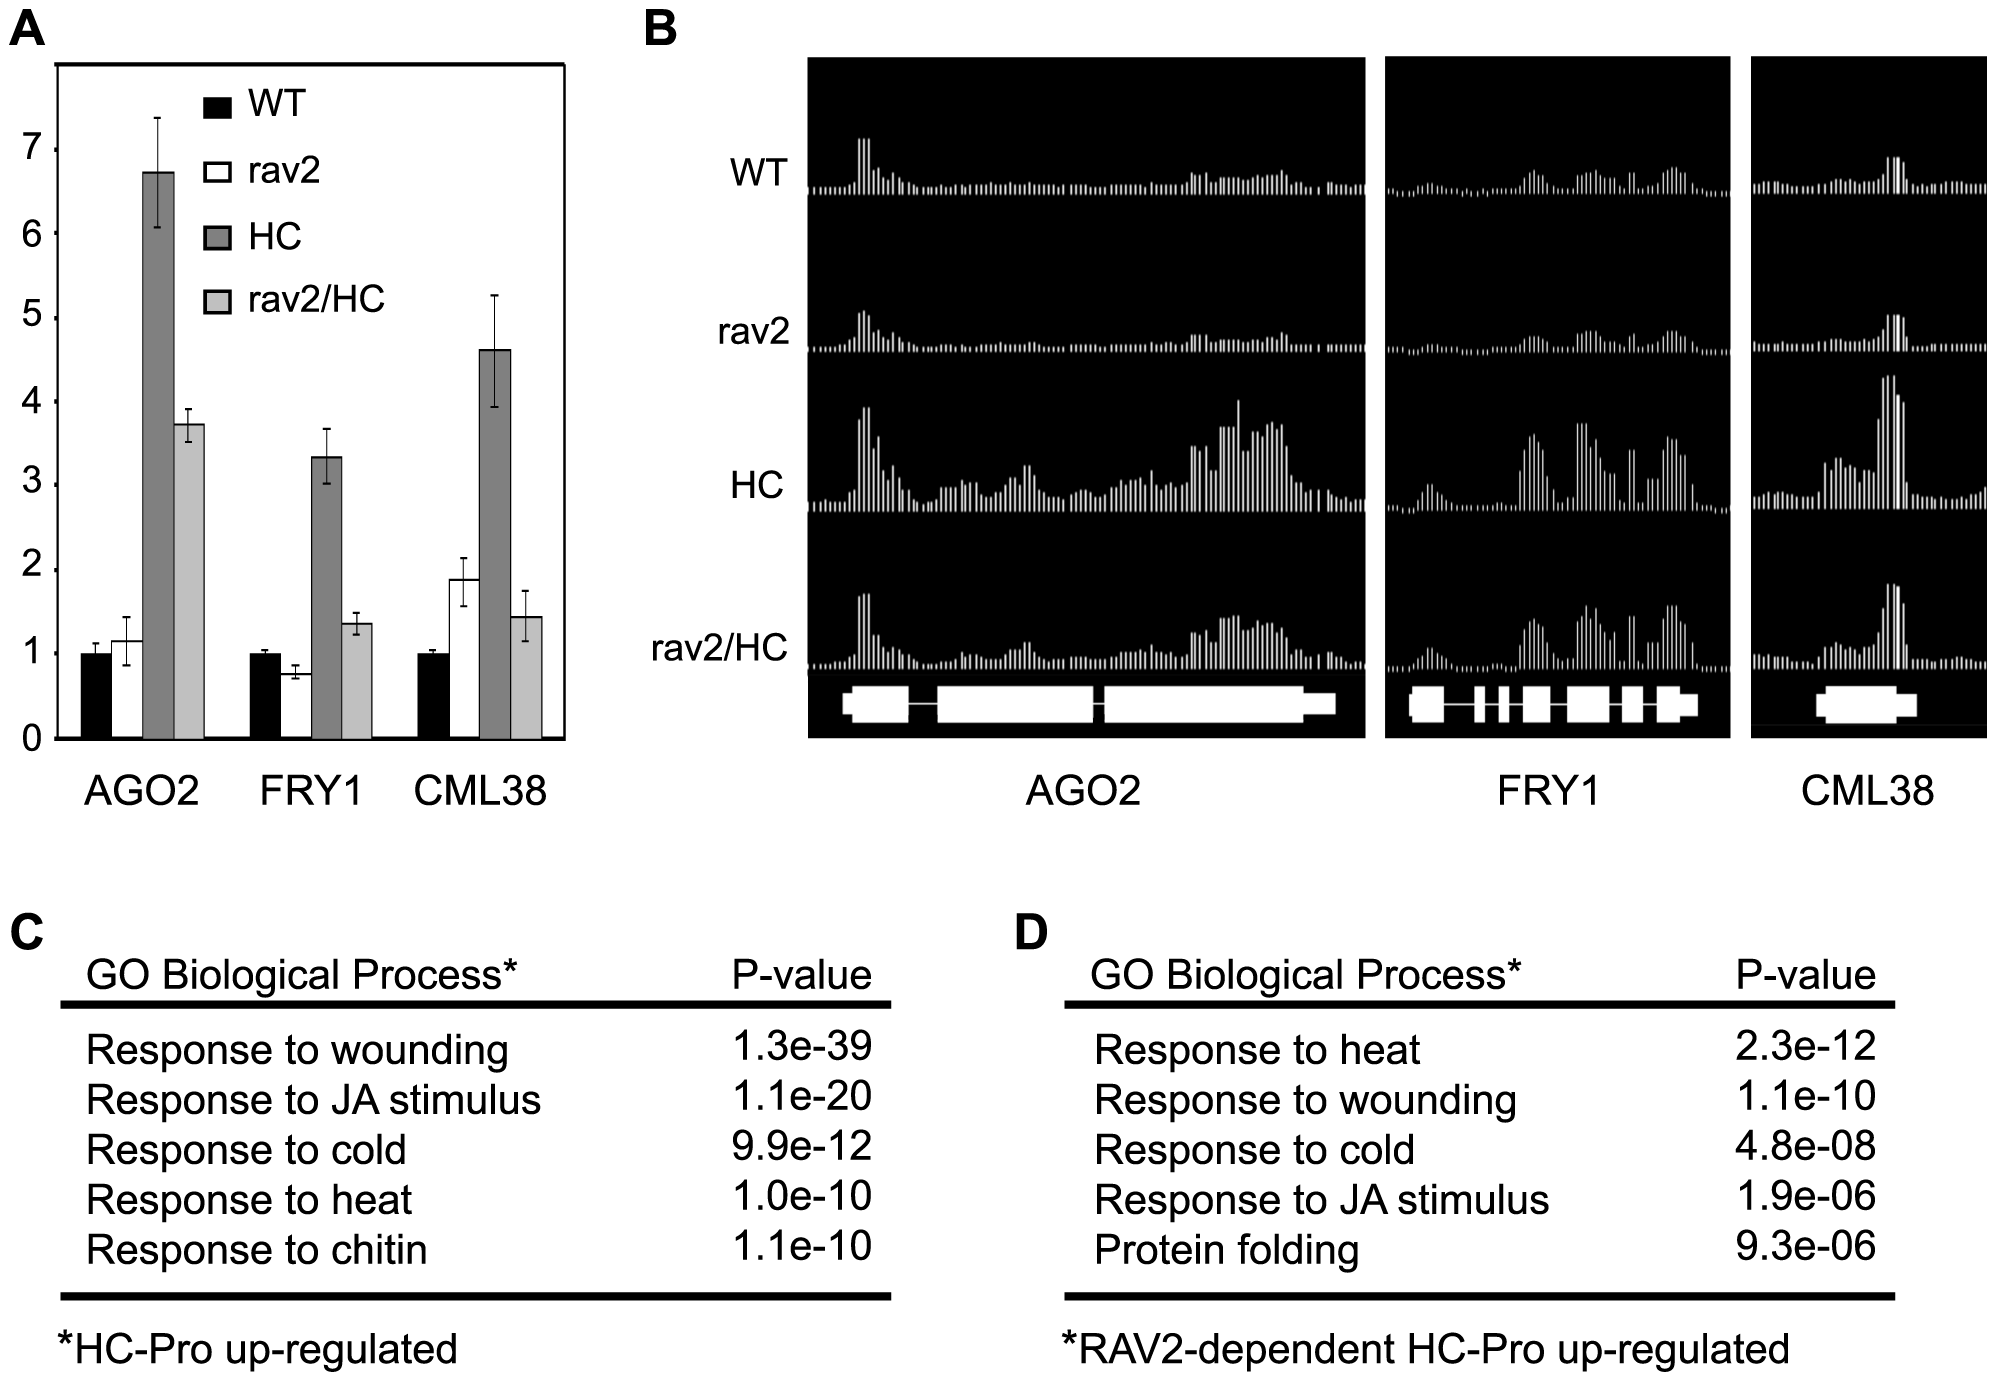 Tiling Microarray Analysis and RT qPCR Show <i>RAV2</i>-dependent Up-regulation of Silencing-associated Genes by HC-Pro.